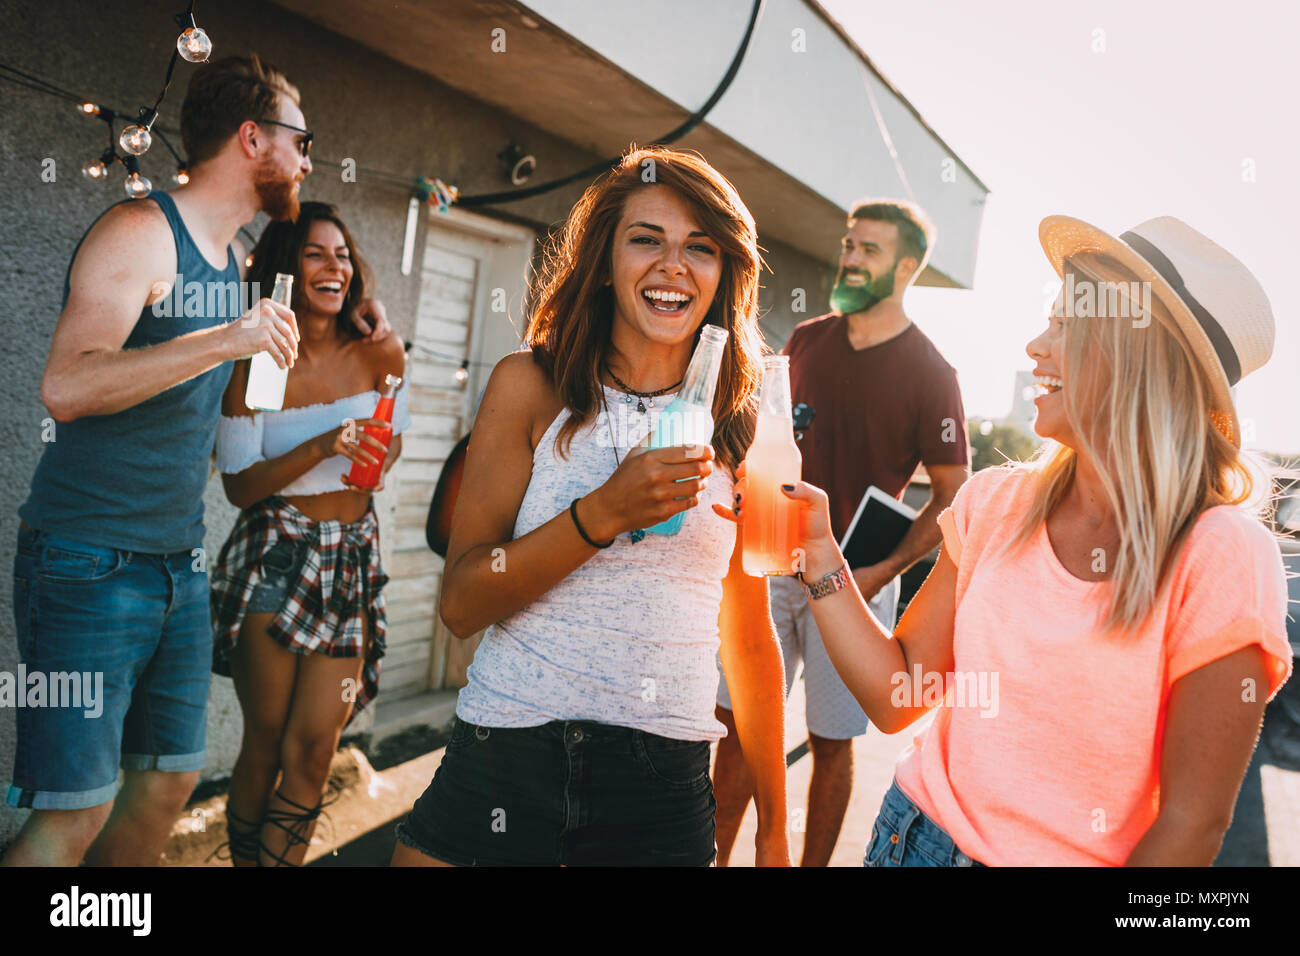 Happy young girls having fun at party Photo Stock